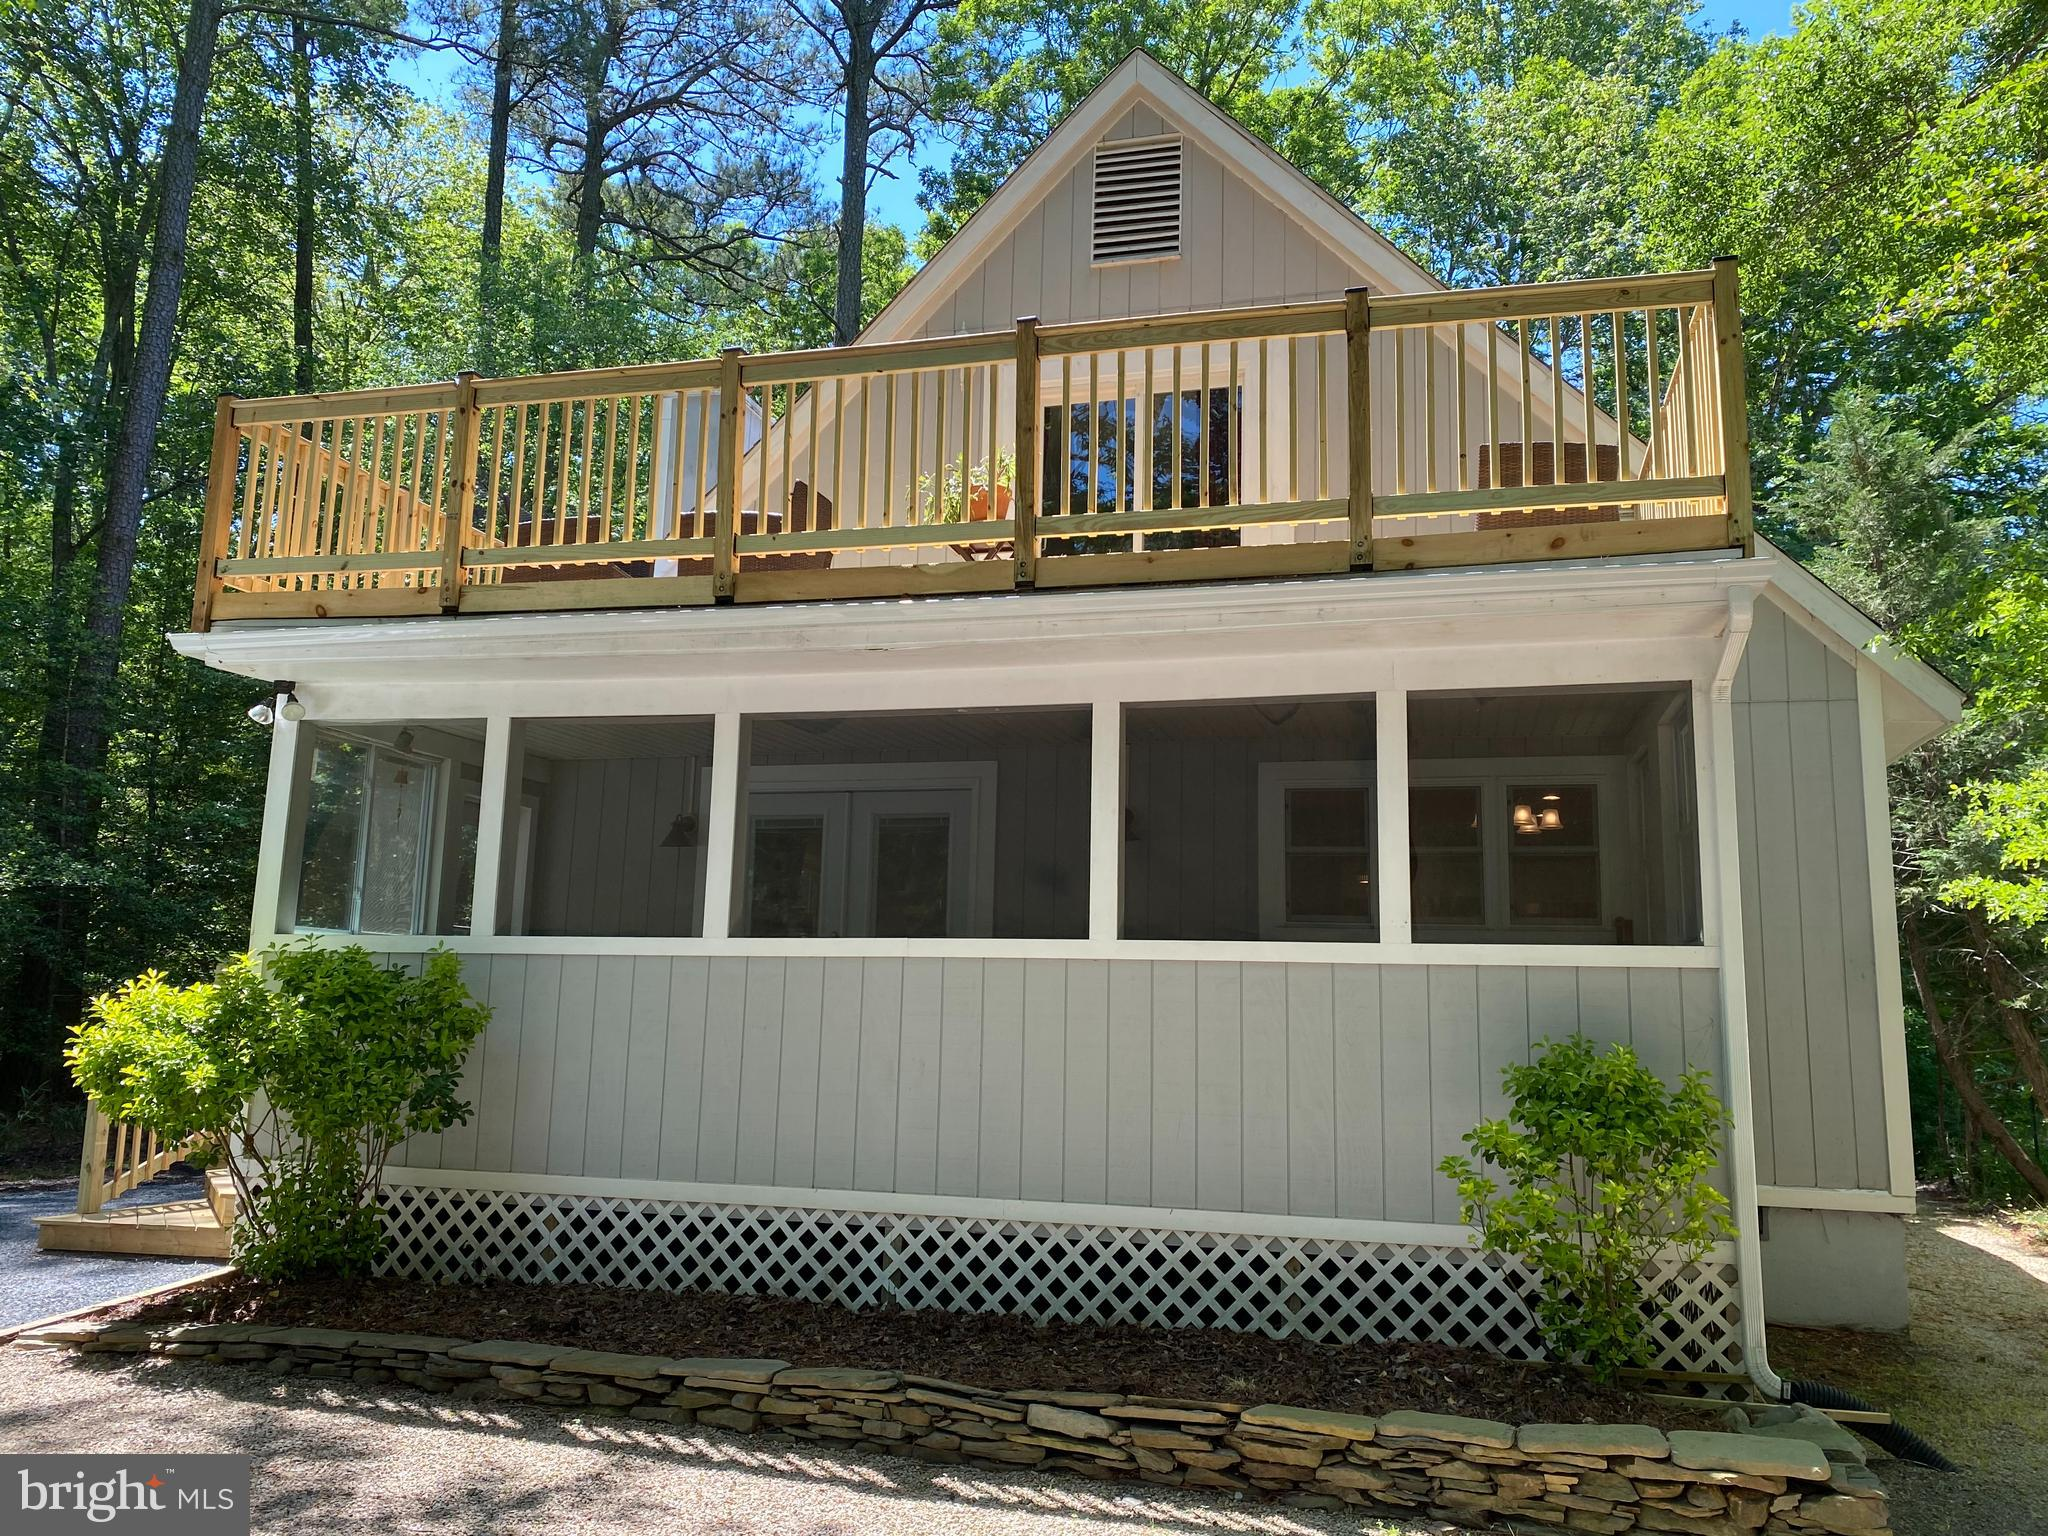 Beautiful new listing in desirable Ocean Pines.  This home features a nice open floor plan and a large First Floor Master Bed & Bath.  New in 2018 includes upgraded lighting fixtures throughout,  which are LED, pendant lights, beautiful shiplap in the Living Room, custom built mantel over the wood burning fireplace,  carpet in bedrooms, replaced planks on 2nd story decking as well as railing, new front entry deck, refinished the main stairwell,  re-insulated hip roof sections of the home, installed air ventilation for crawl space and hip roof sections of the home, Stainless Steel appliances including Fridge, Stove and Microwave, Dishwasher in 2020 as well as the Washer & Dryer.  New doors and windows on the 1st floor street side of the home were installed in 2020.  Bathroom light fixtures were upgraded in 2021.  Crown molding throughout the 1st floor, adds a nice touch.  Roof is approximately 8 yrs old as well as the water heater and upper level HVAC.   Priced to sell, this home will not last long!  Professional photos coming.